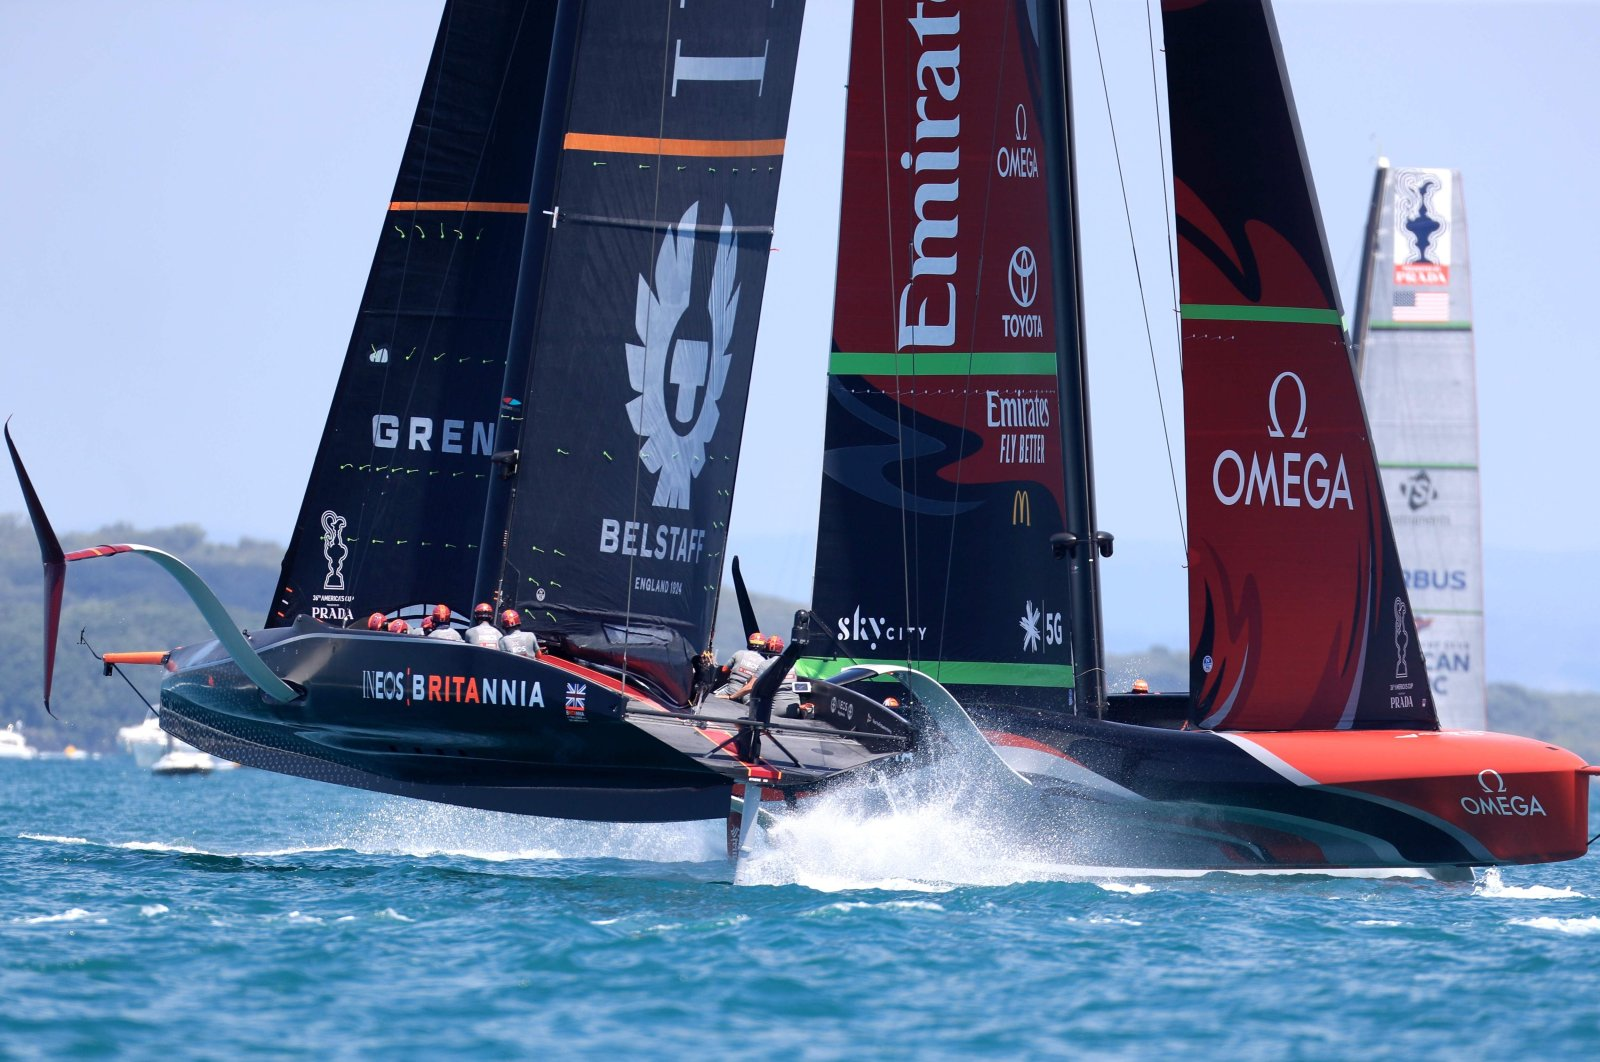 INEOS Team UK (L) competes against Emirates Team New Zealand during the race in Auckland, New Zealand, Dec. 20, 2020. (AFP PHOTO)